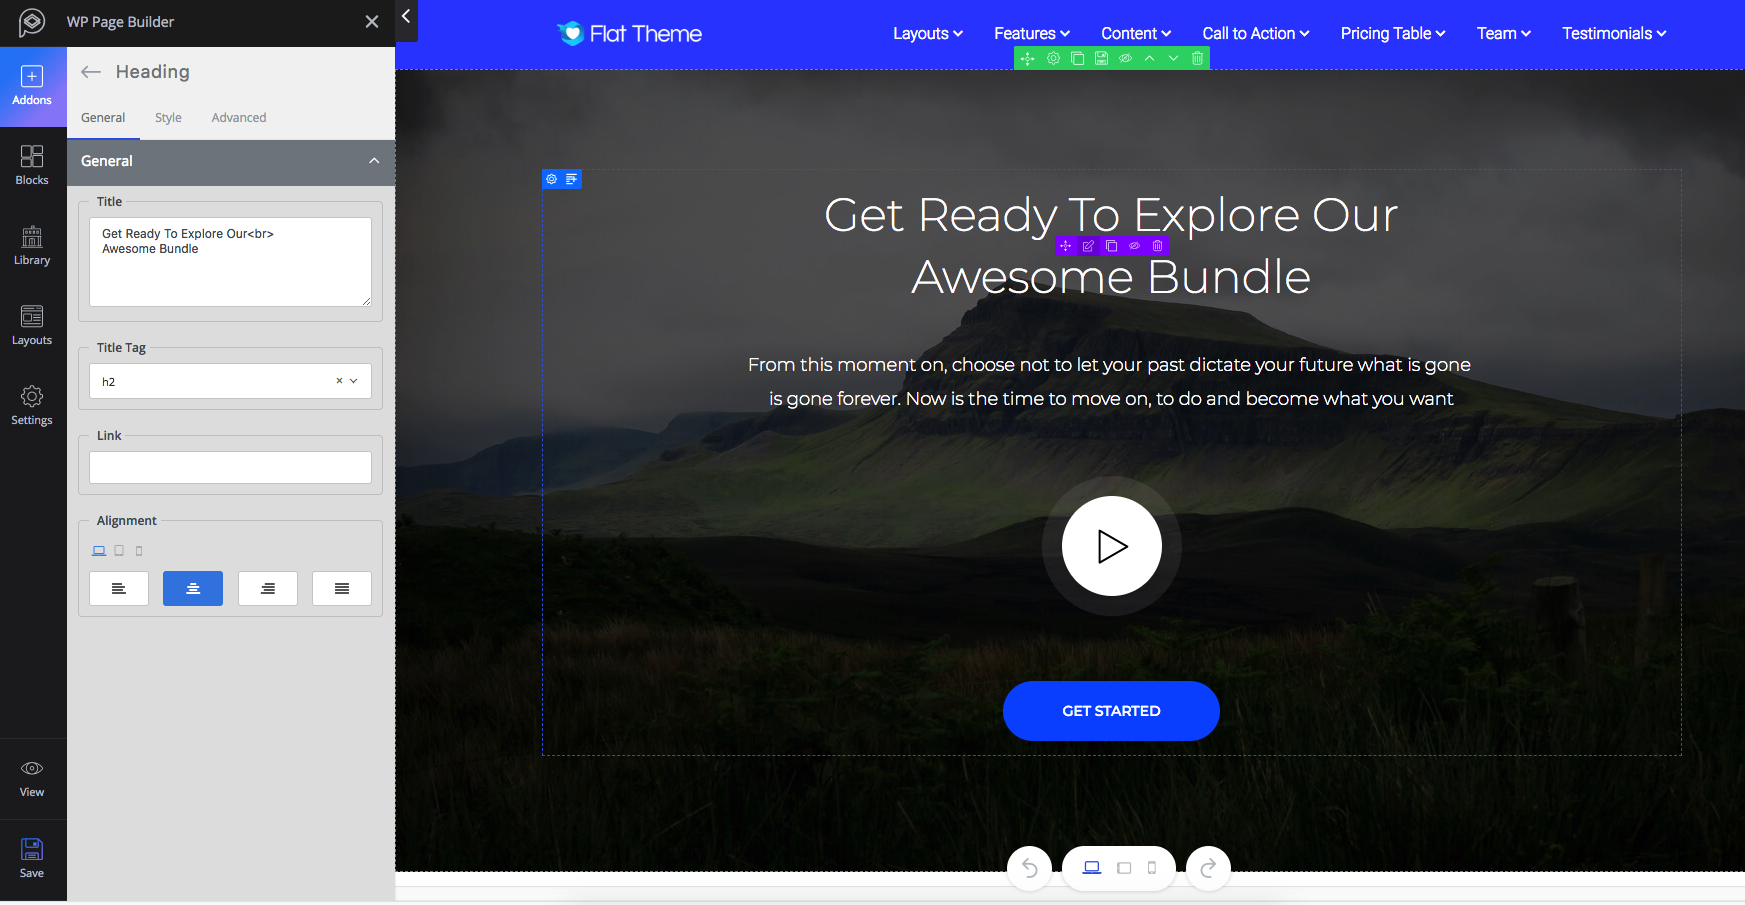 WP Page Builder – Drag & Drop Page Builder with Layouts